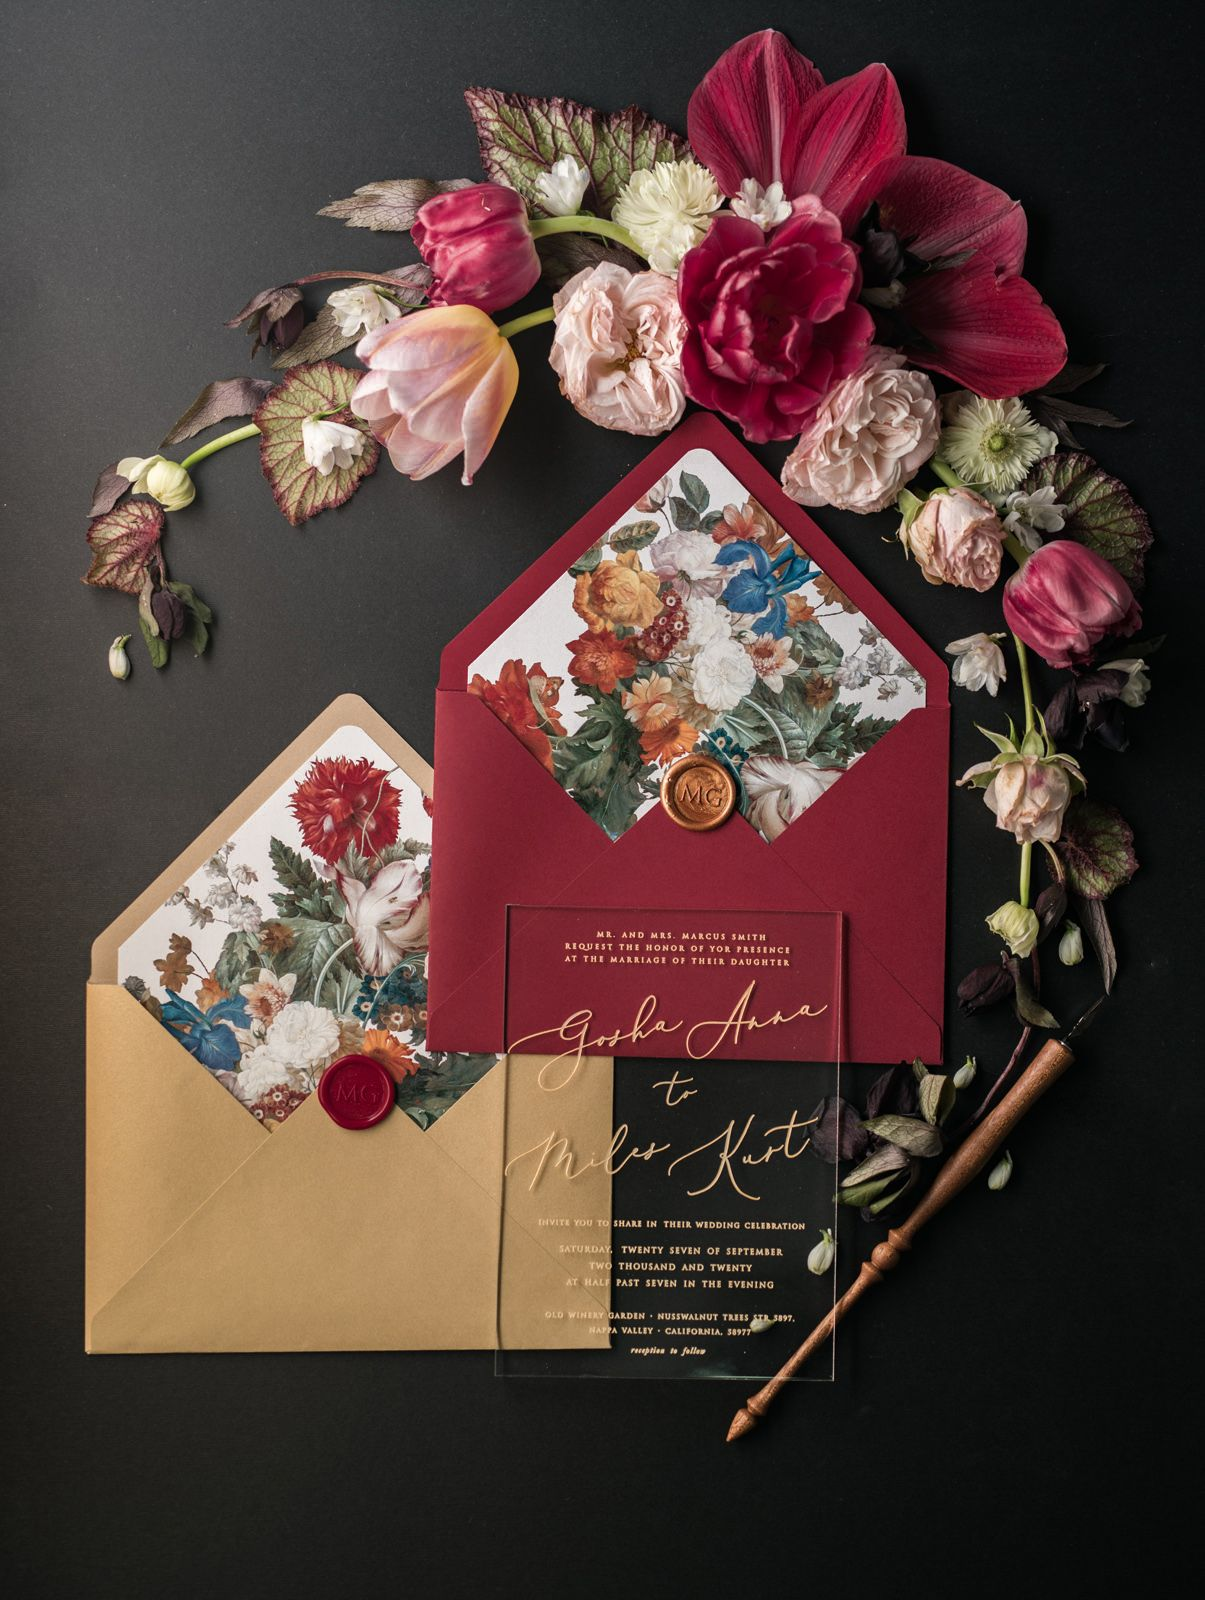 Magnificent Mr And Mrs Smith Wedding Invitation Component